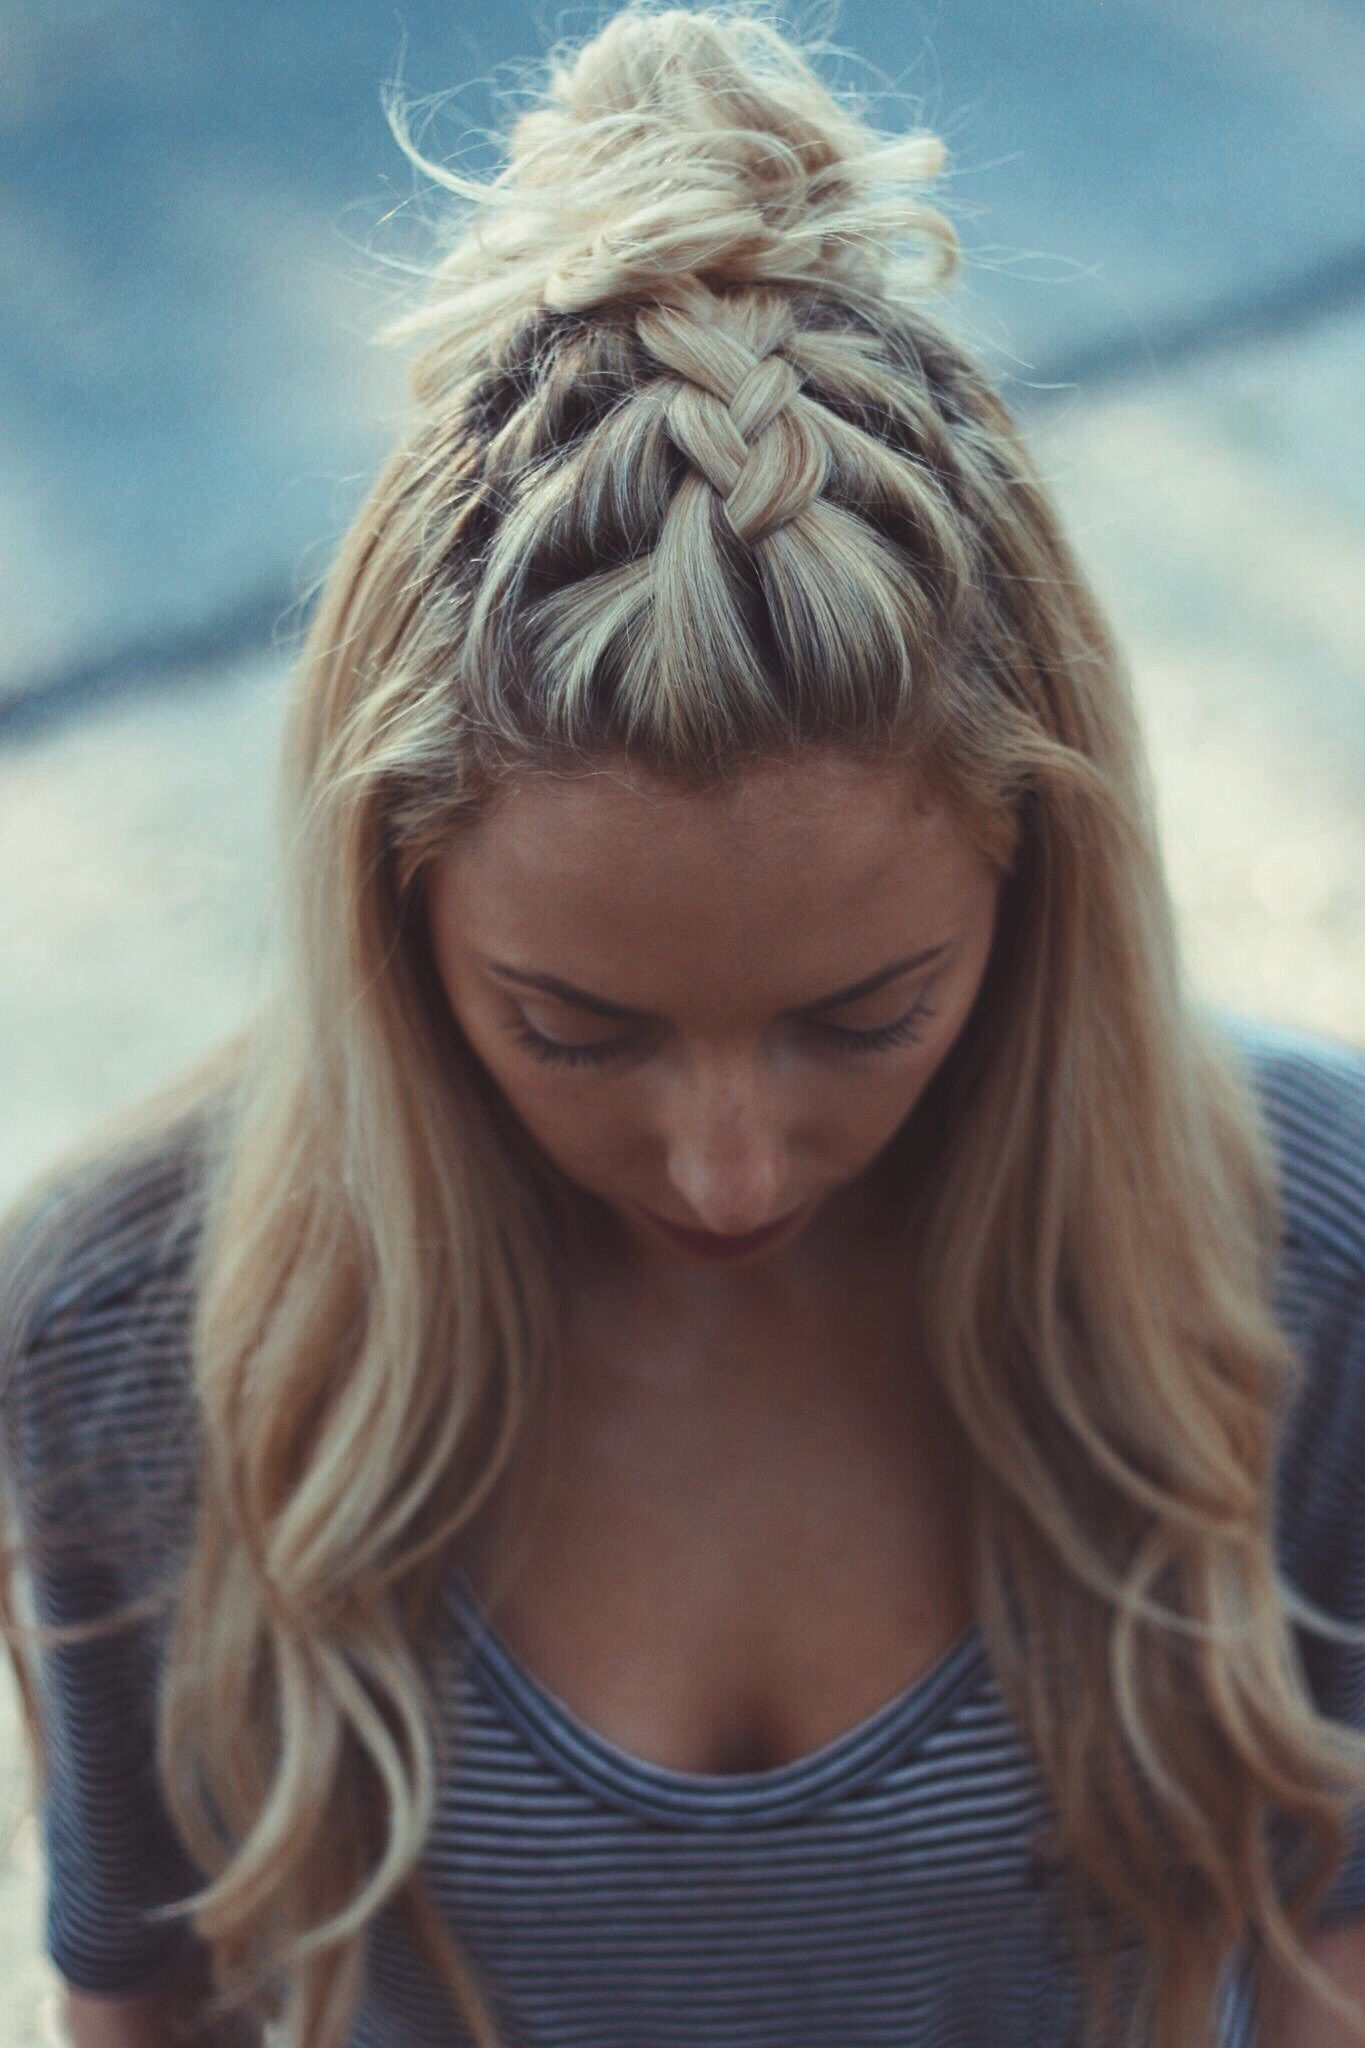 On the Fence | K||C Double Take | Pinterest | Braids, Hair and Hair ...